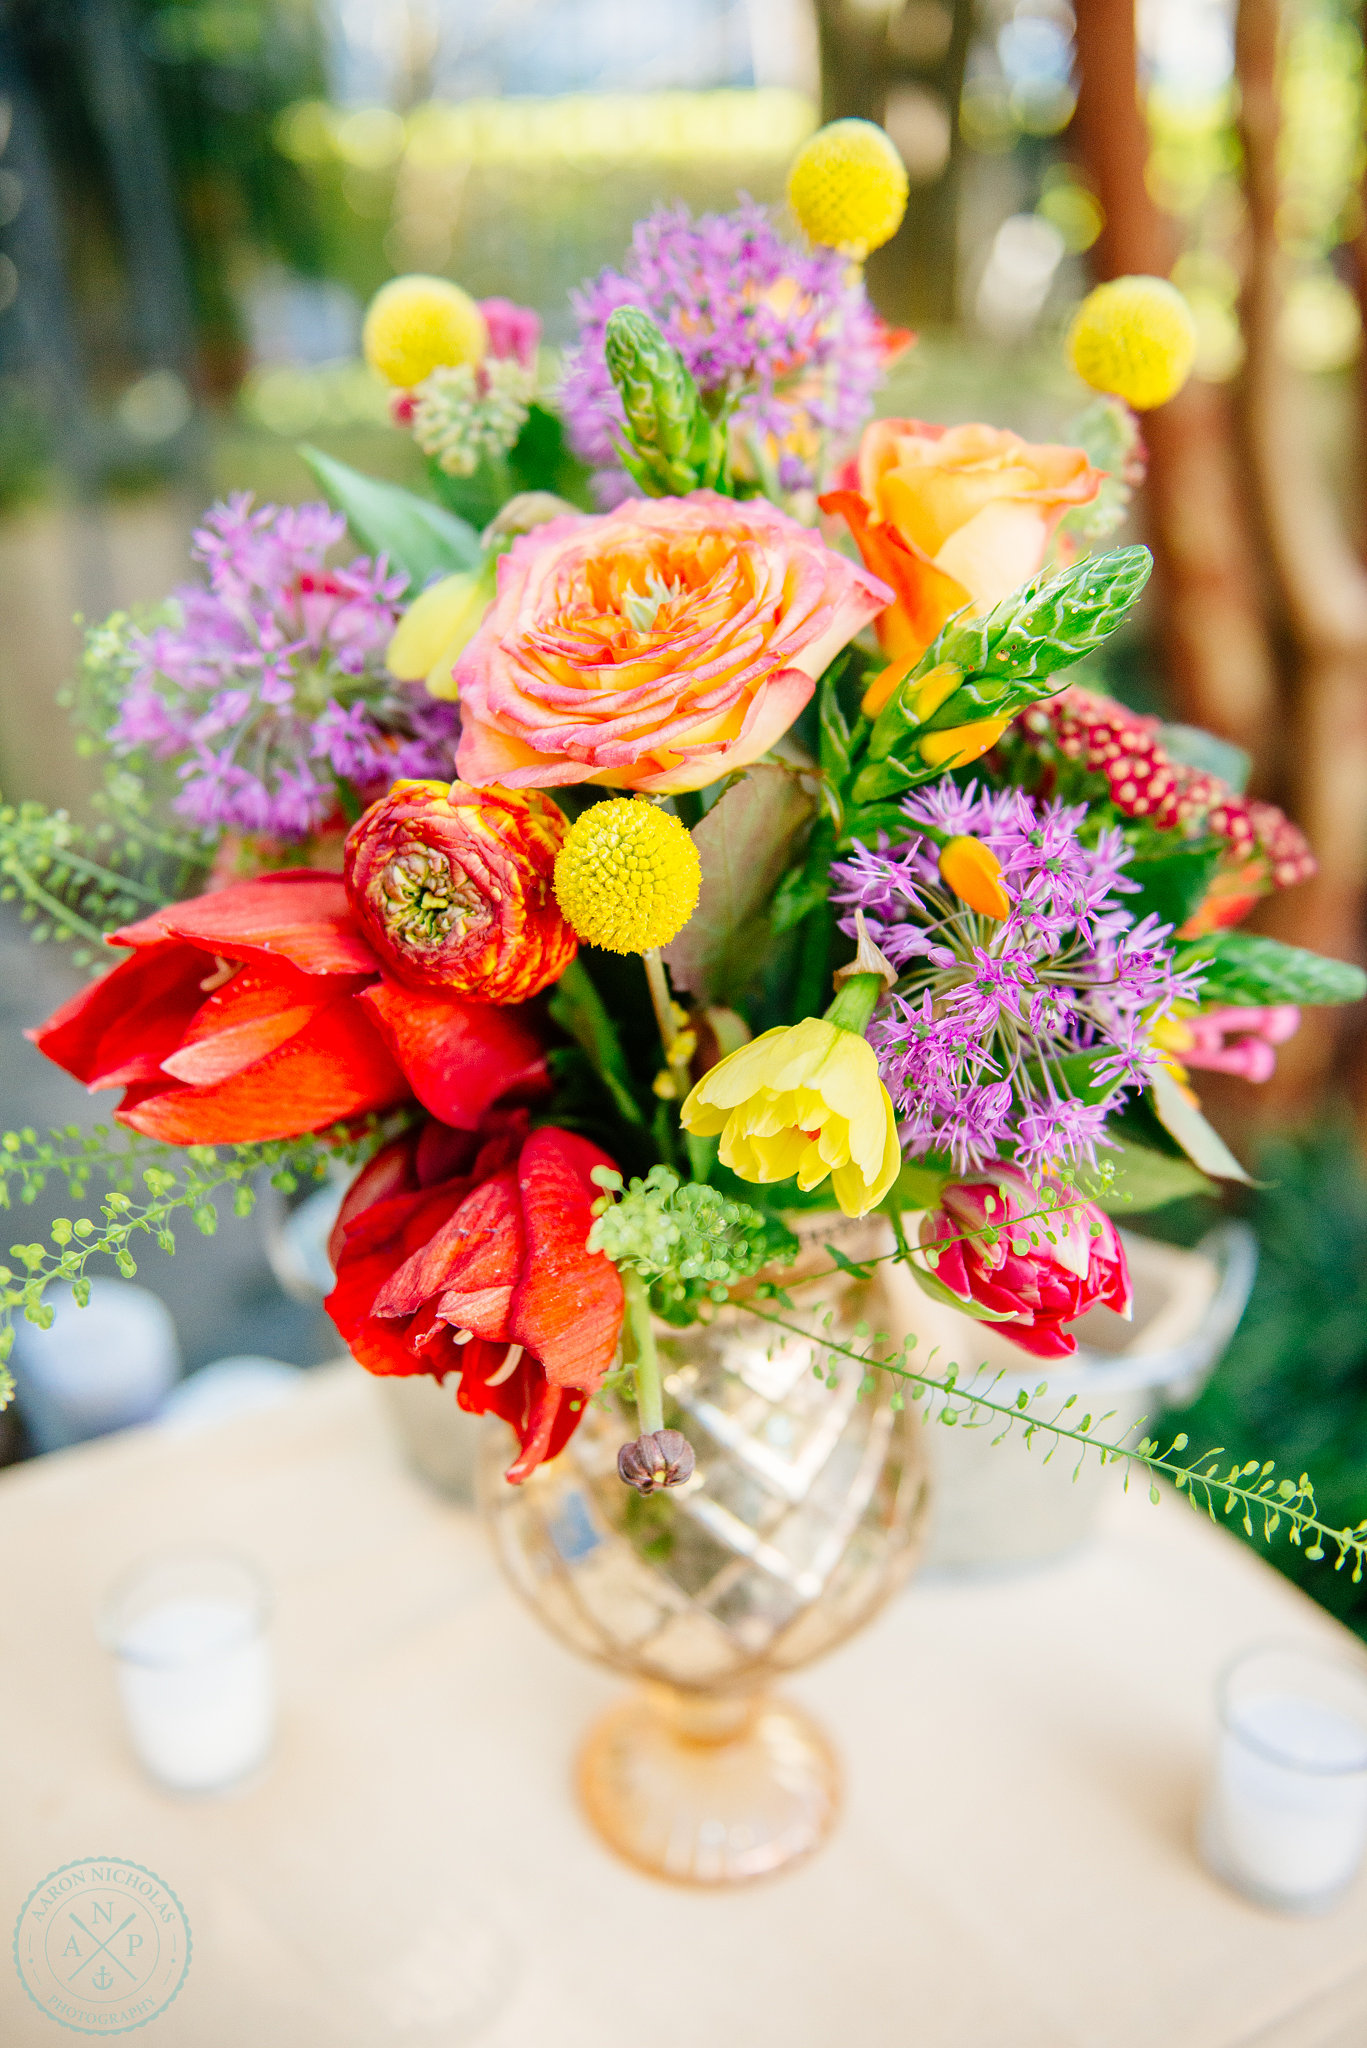 wildflowers-charleston-tulips-fuchsia-orange-pink-flowers-yellow-pom-poms-outdoor-garden-reception